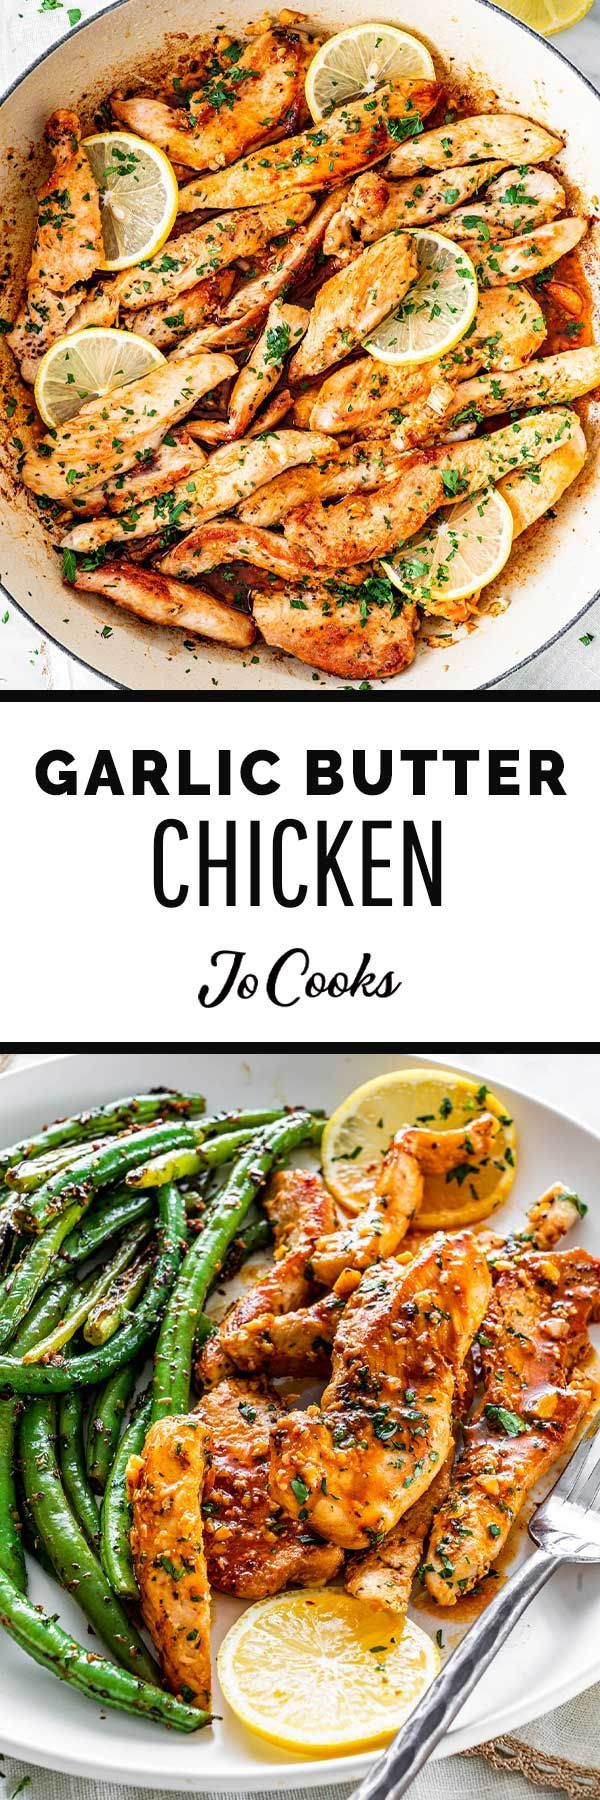 This Garlic Butter Chicken is simple and delicious! Juicy, tender, and full of flavor, this recipe